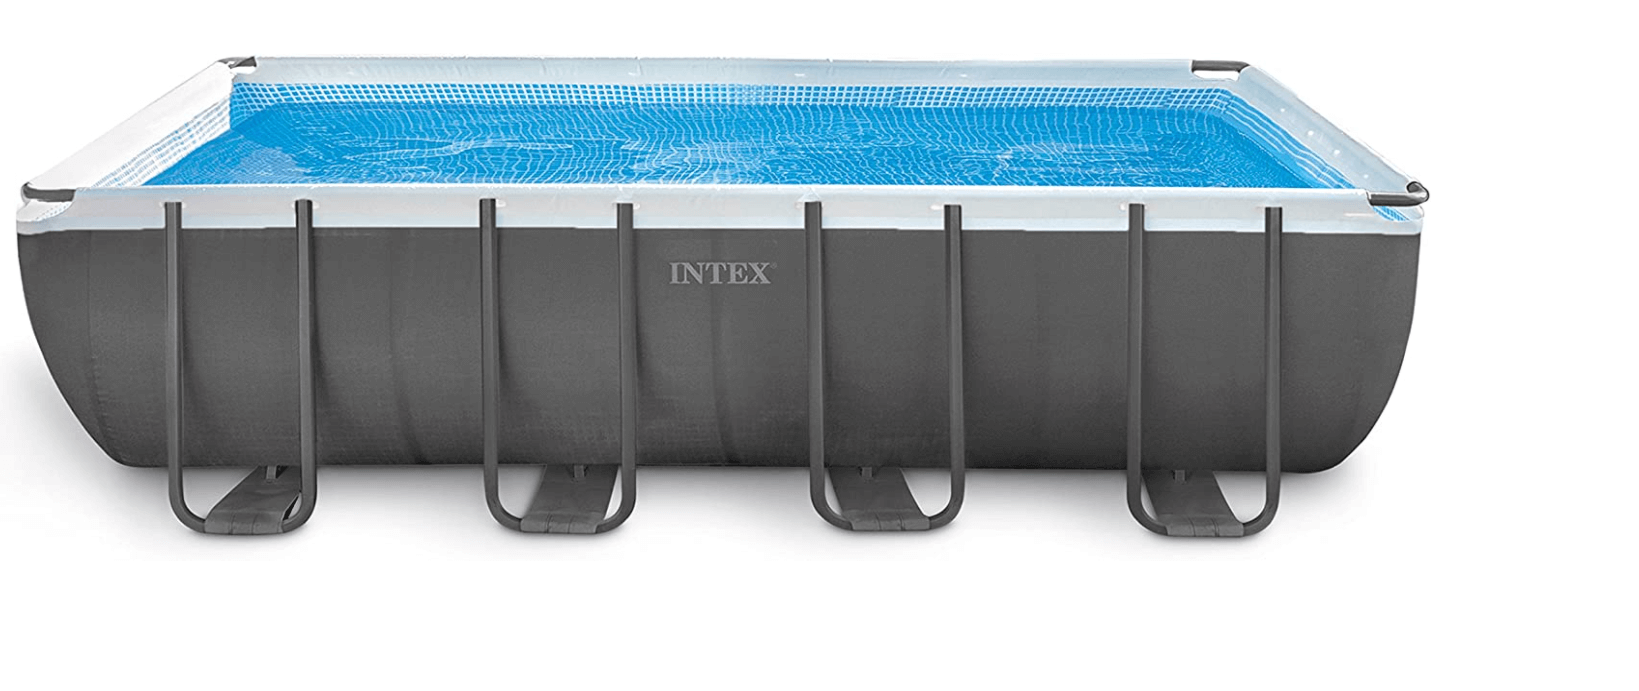 Intex Ultra XTRY Pool Set for above ground